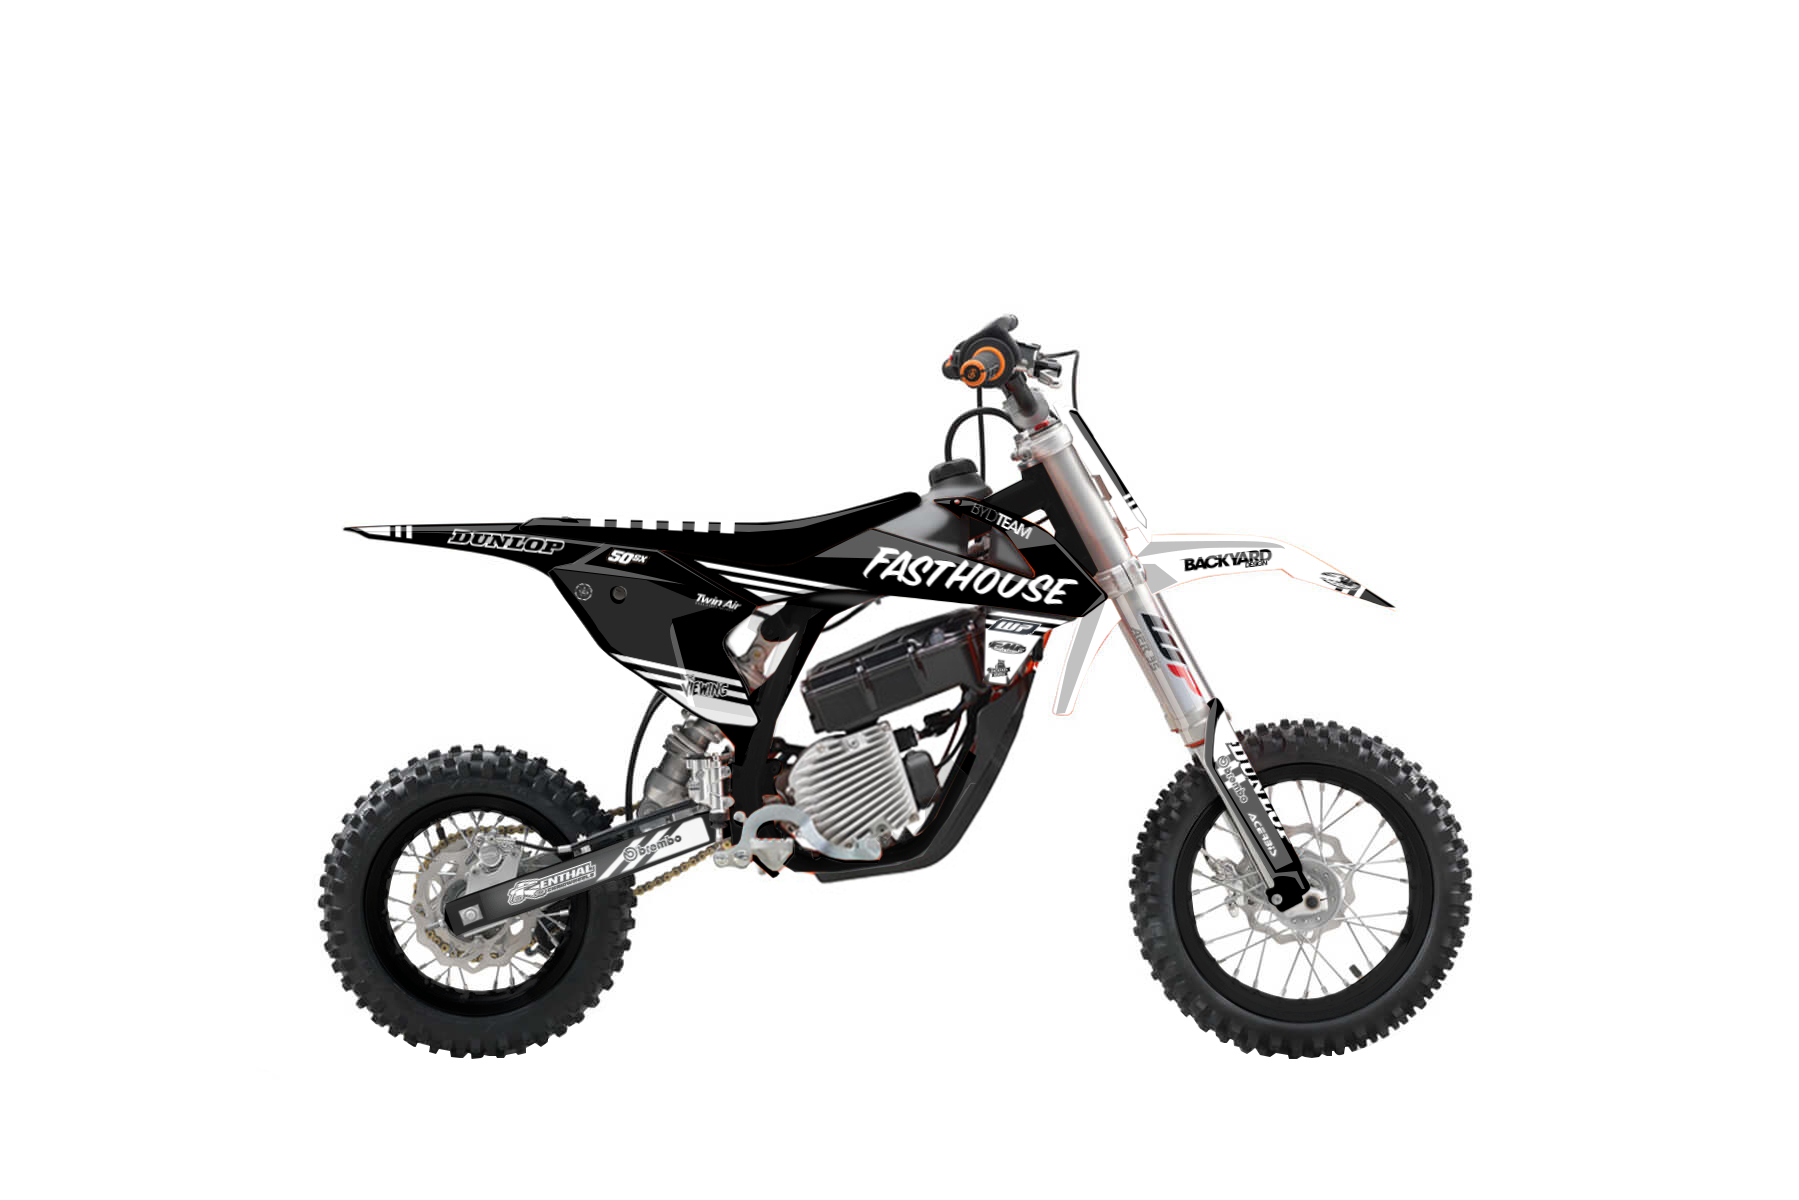 KTM SX E-5 MX Graphic Kits  This mini mx bike is fully electric and shows us what the future will bring for the next generation of mx bikers: almost no noise and free of emissions the KTM SX-E 5 is a good start in the world of off road racing.